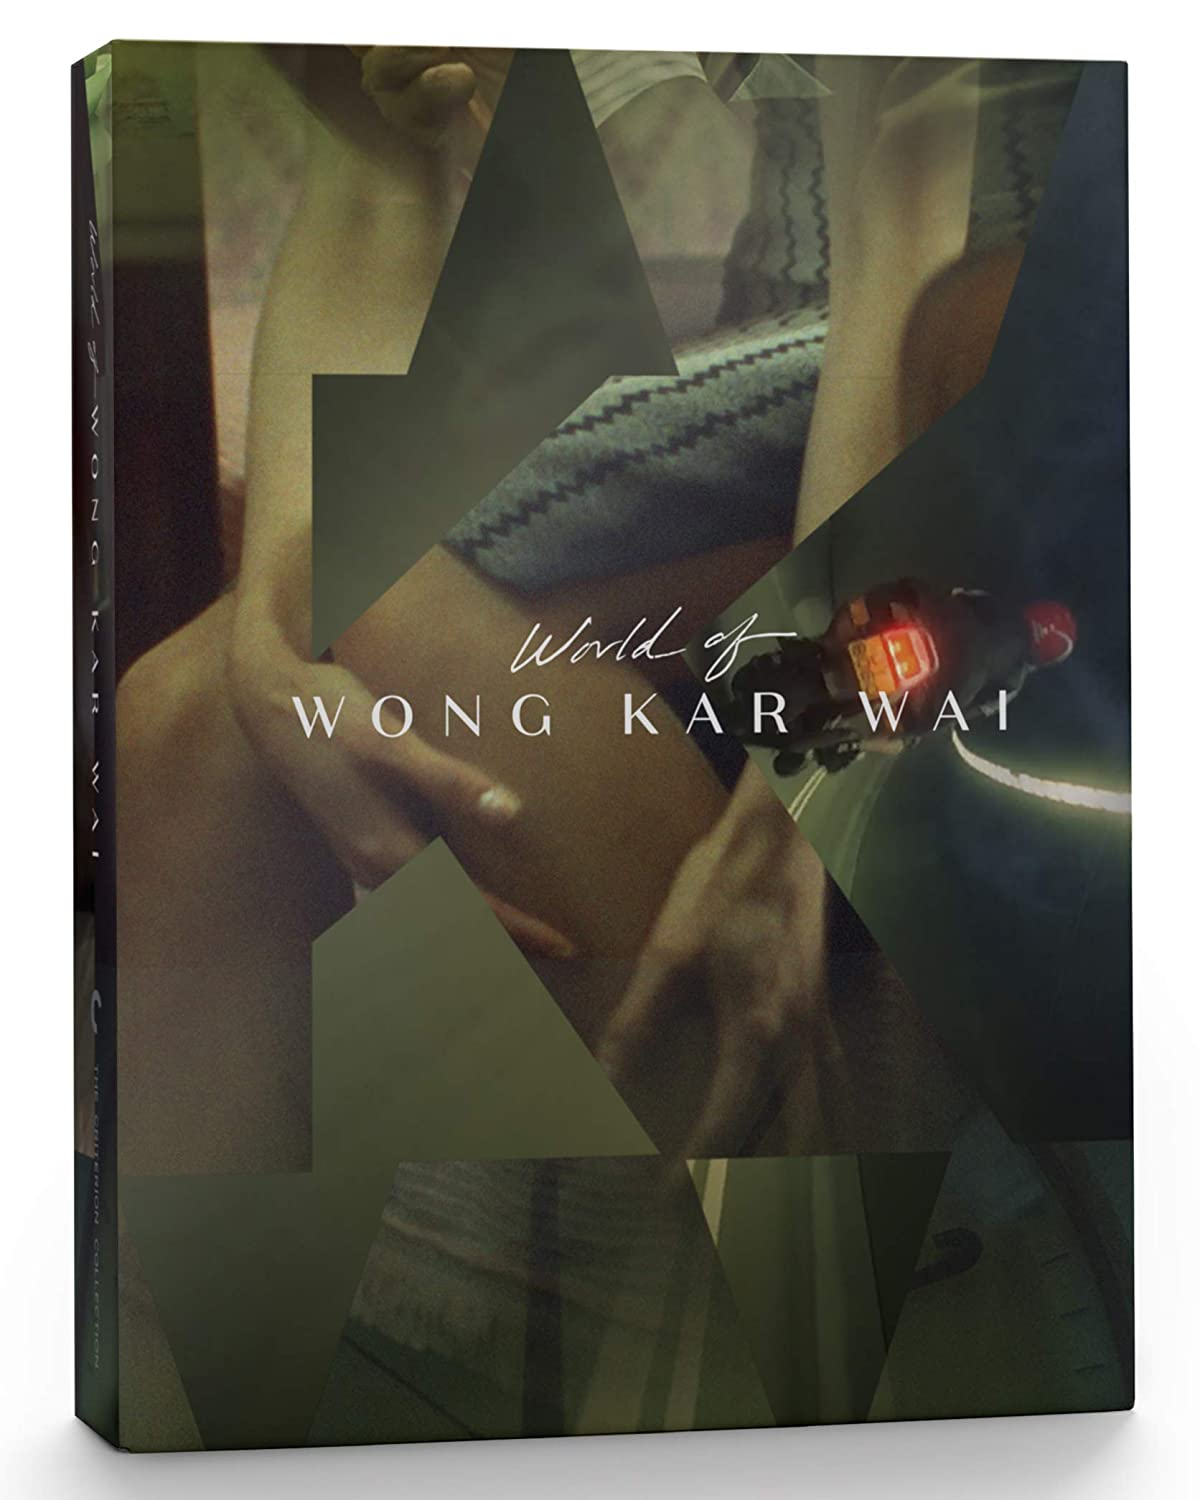 World of Wong Kar Wai Blu-ray front